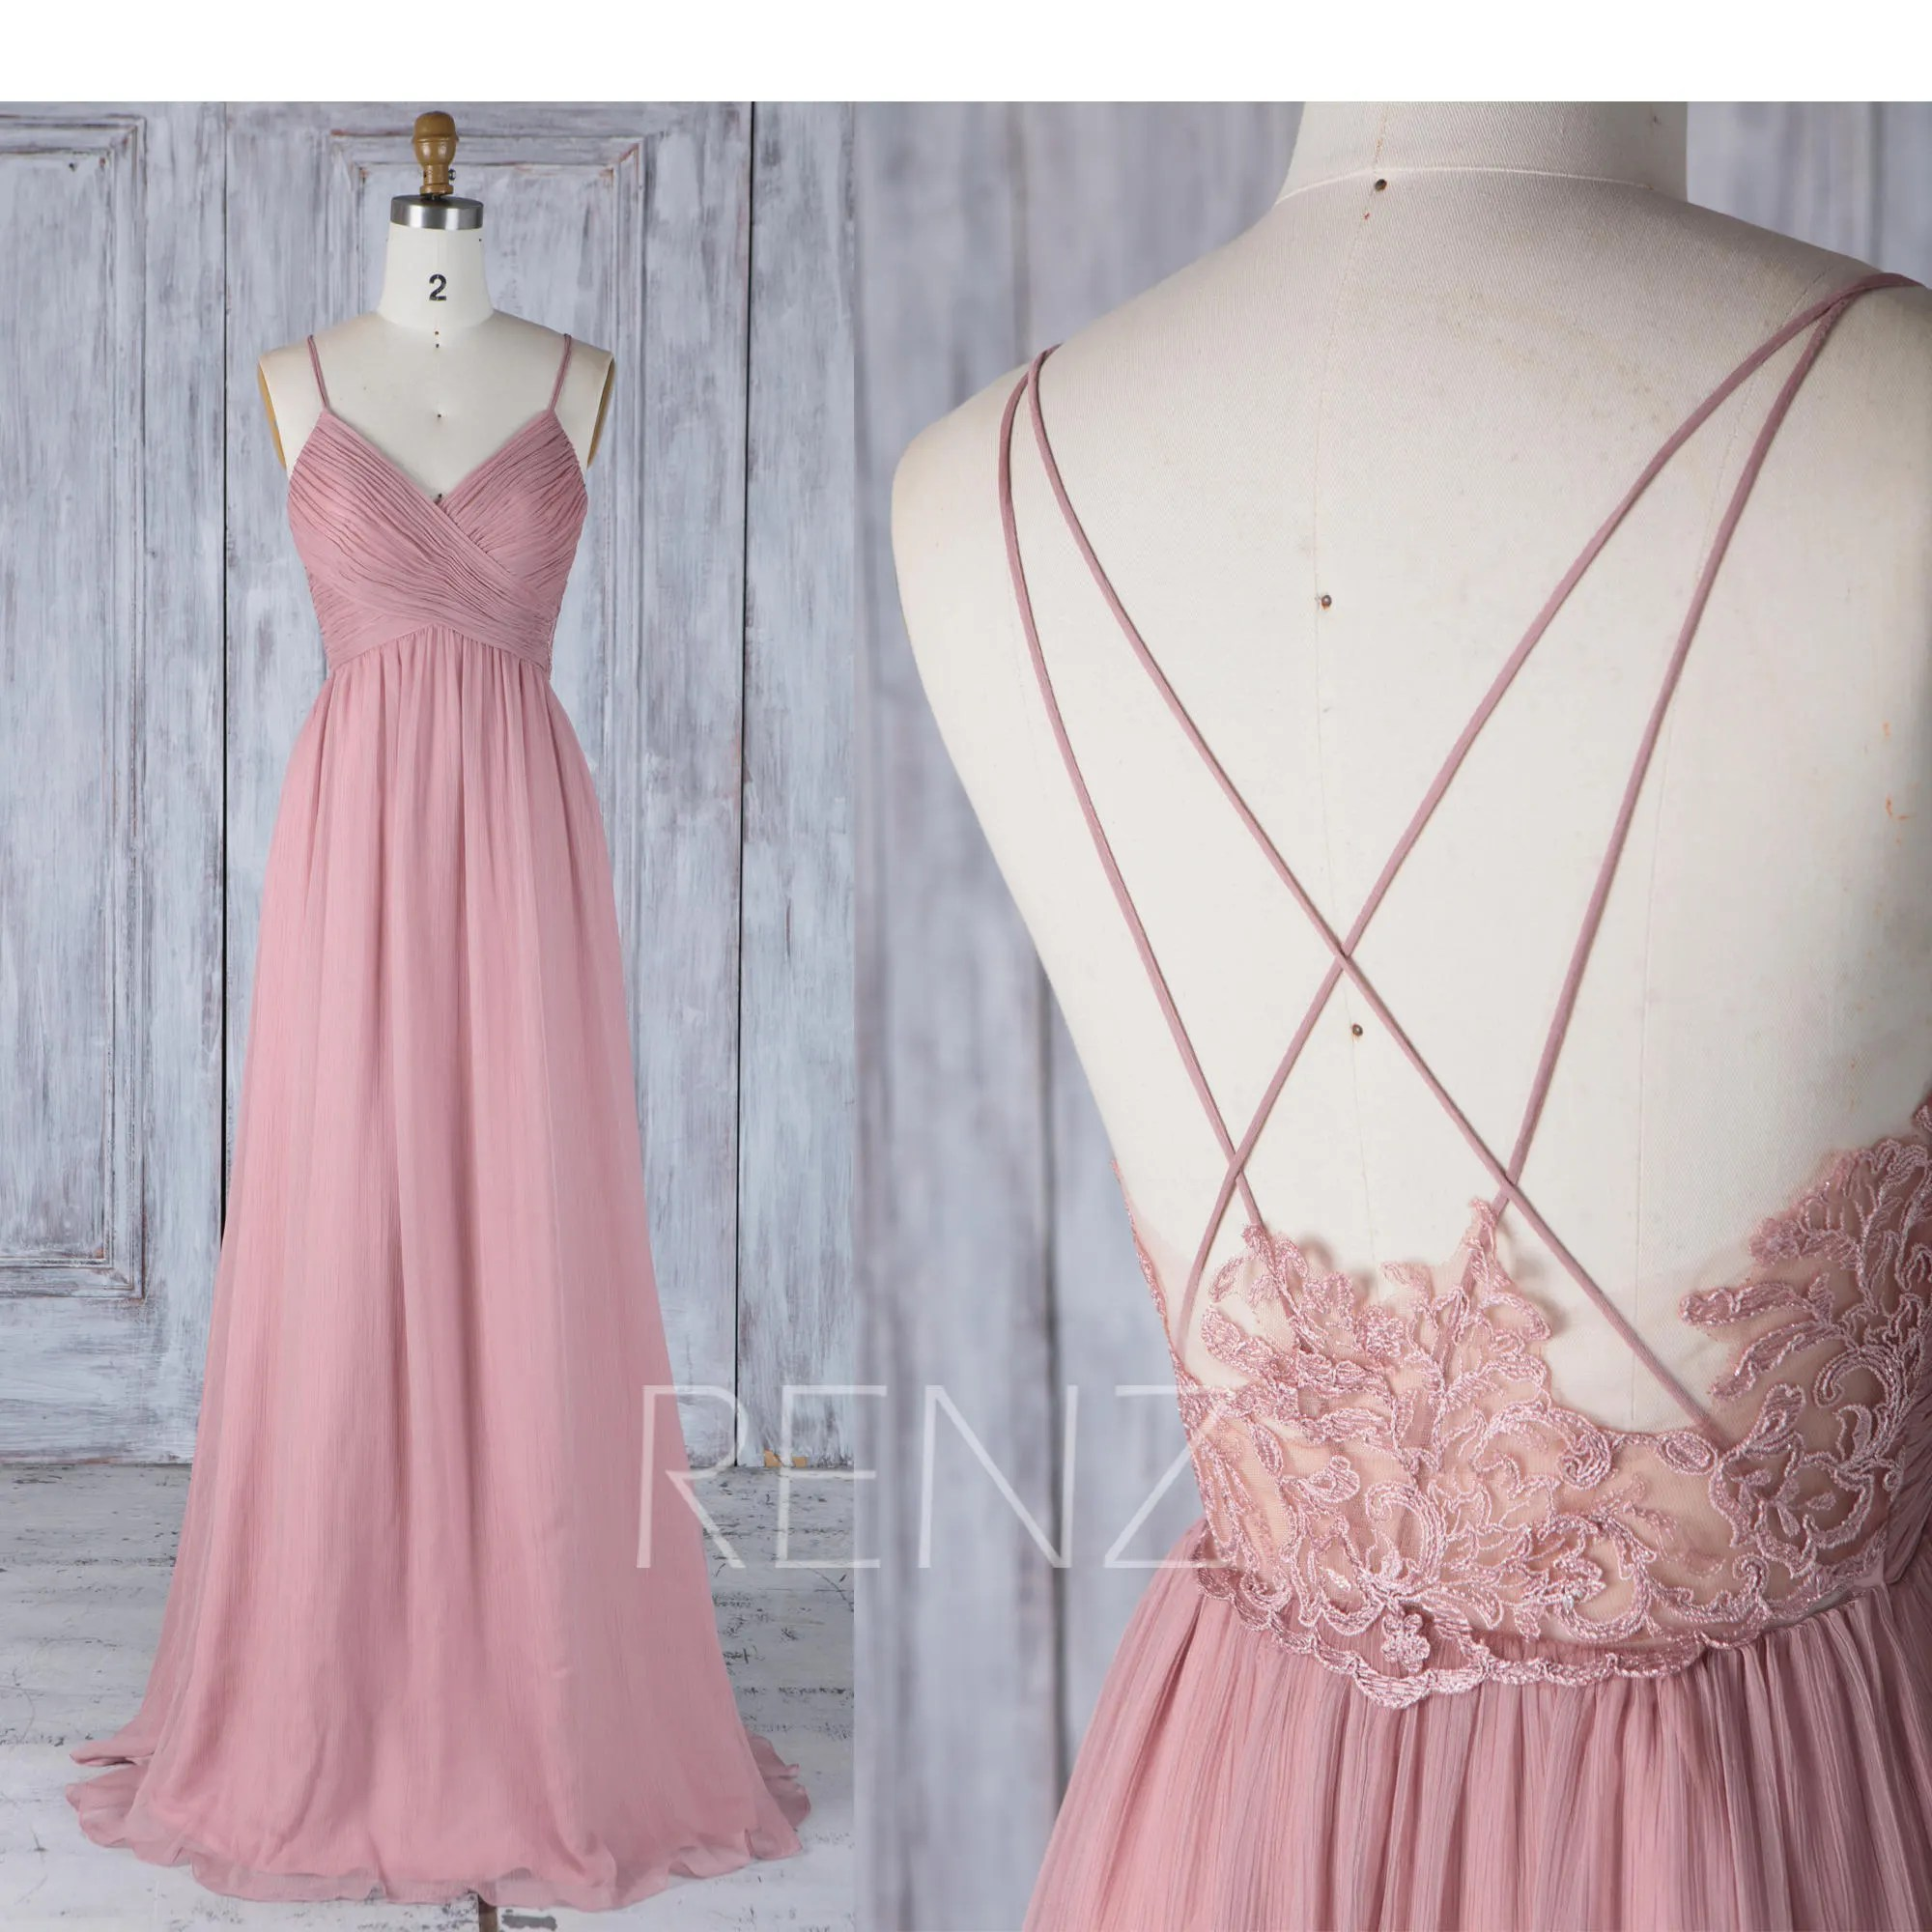 Www 123 Tv Bettwäsche Bridesmaid Dress Dusty Rose Chiffon Wedding Dress Spaghetti Straps V Neck Long Prom Dress Illusion Lace Low Back A Line Evening Dress H497a